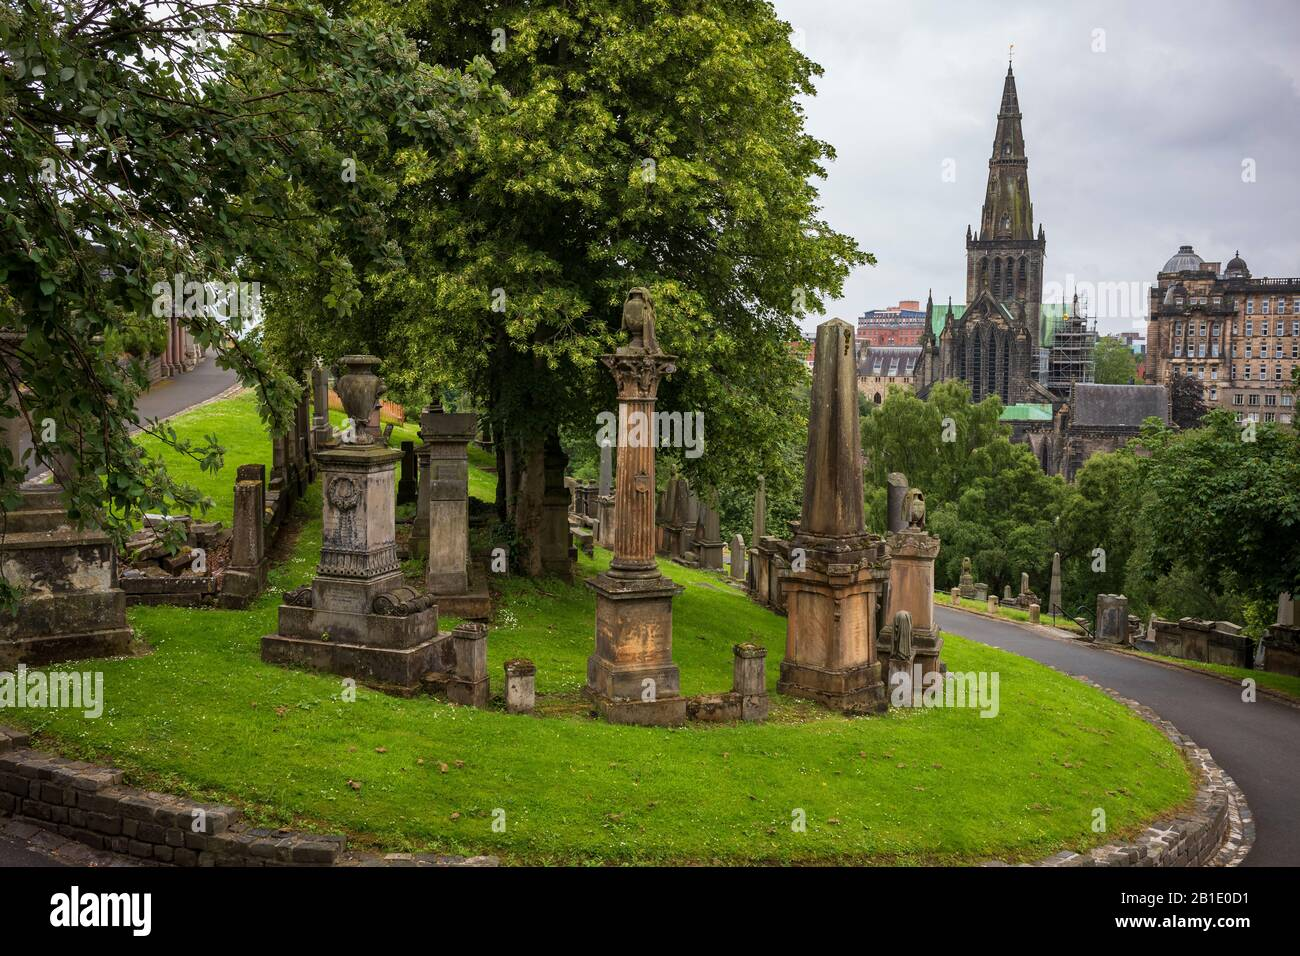 Glasgow, Scotland/UK - June 29, 2019: The Glasgow Necropolis, a Victorian cemetery, is located on a low, but very prominent hill to the east of Glasgo Stock Photo